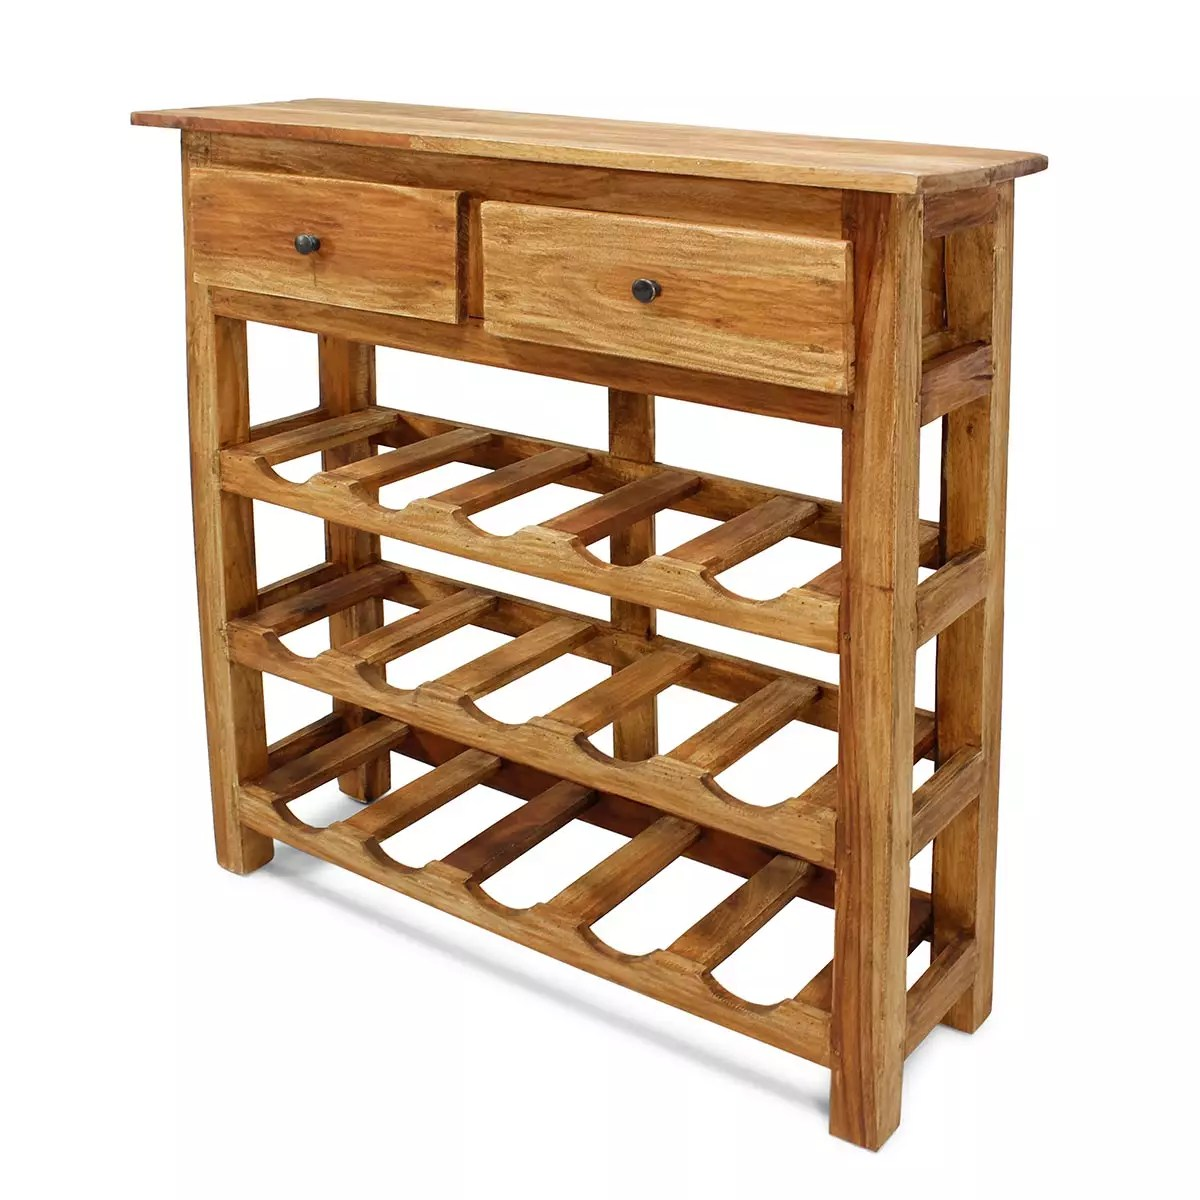 Muebles De Madera Bar Botelleros Bar Zeian Botelleros De Pared En Madera